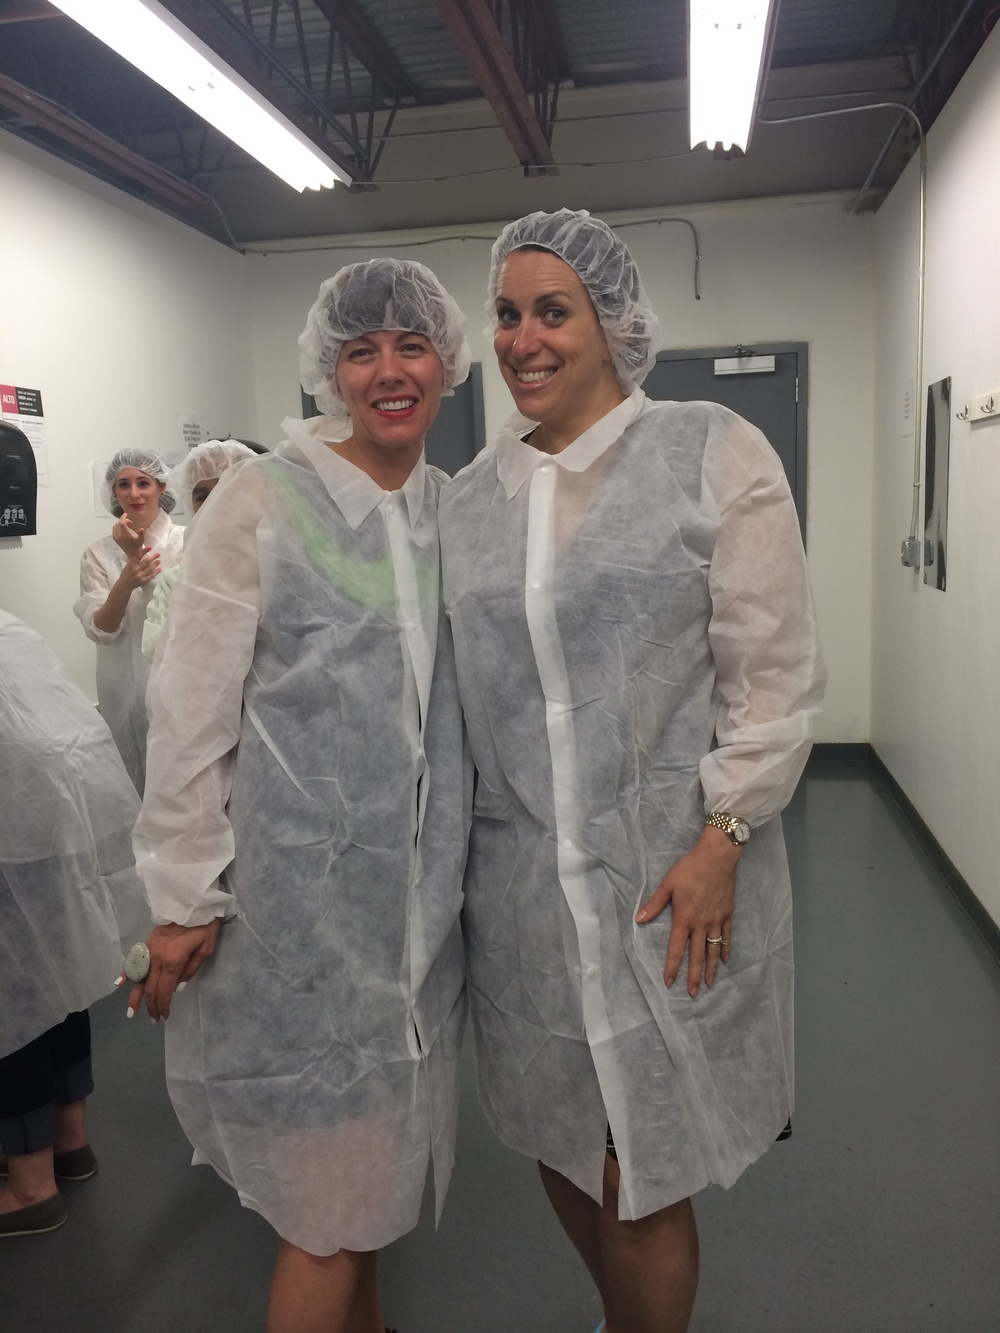 All dressed up for a tour of the JCOCO factory floor.